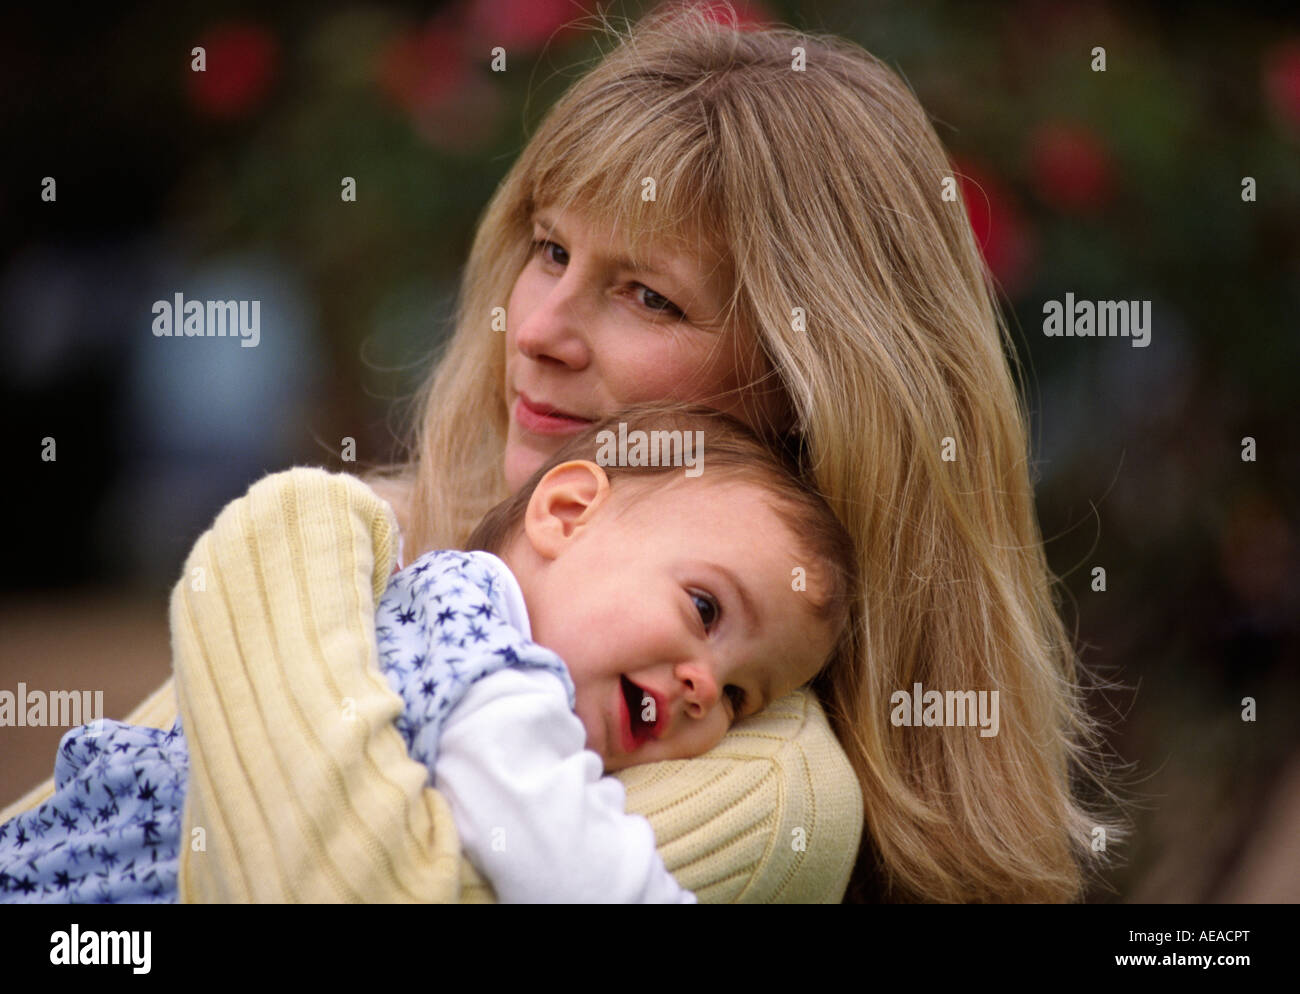 A MOTHER and her one year old baby GIRL MR - Stock Image